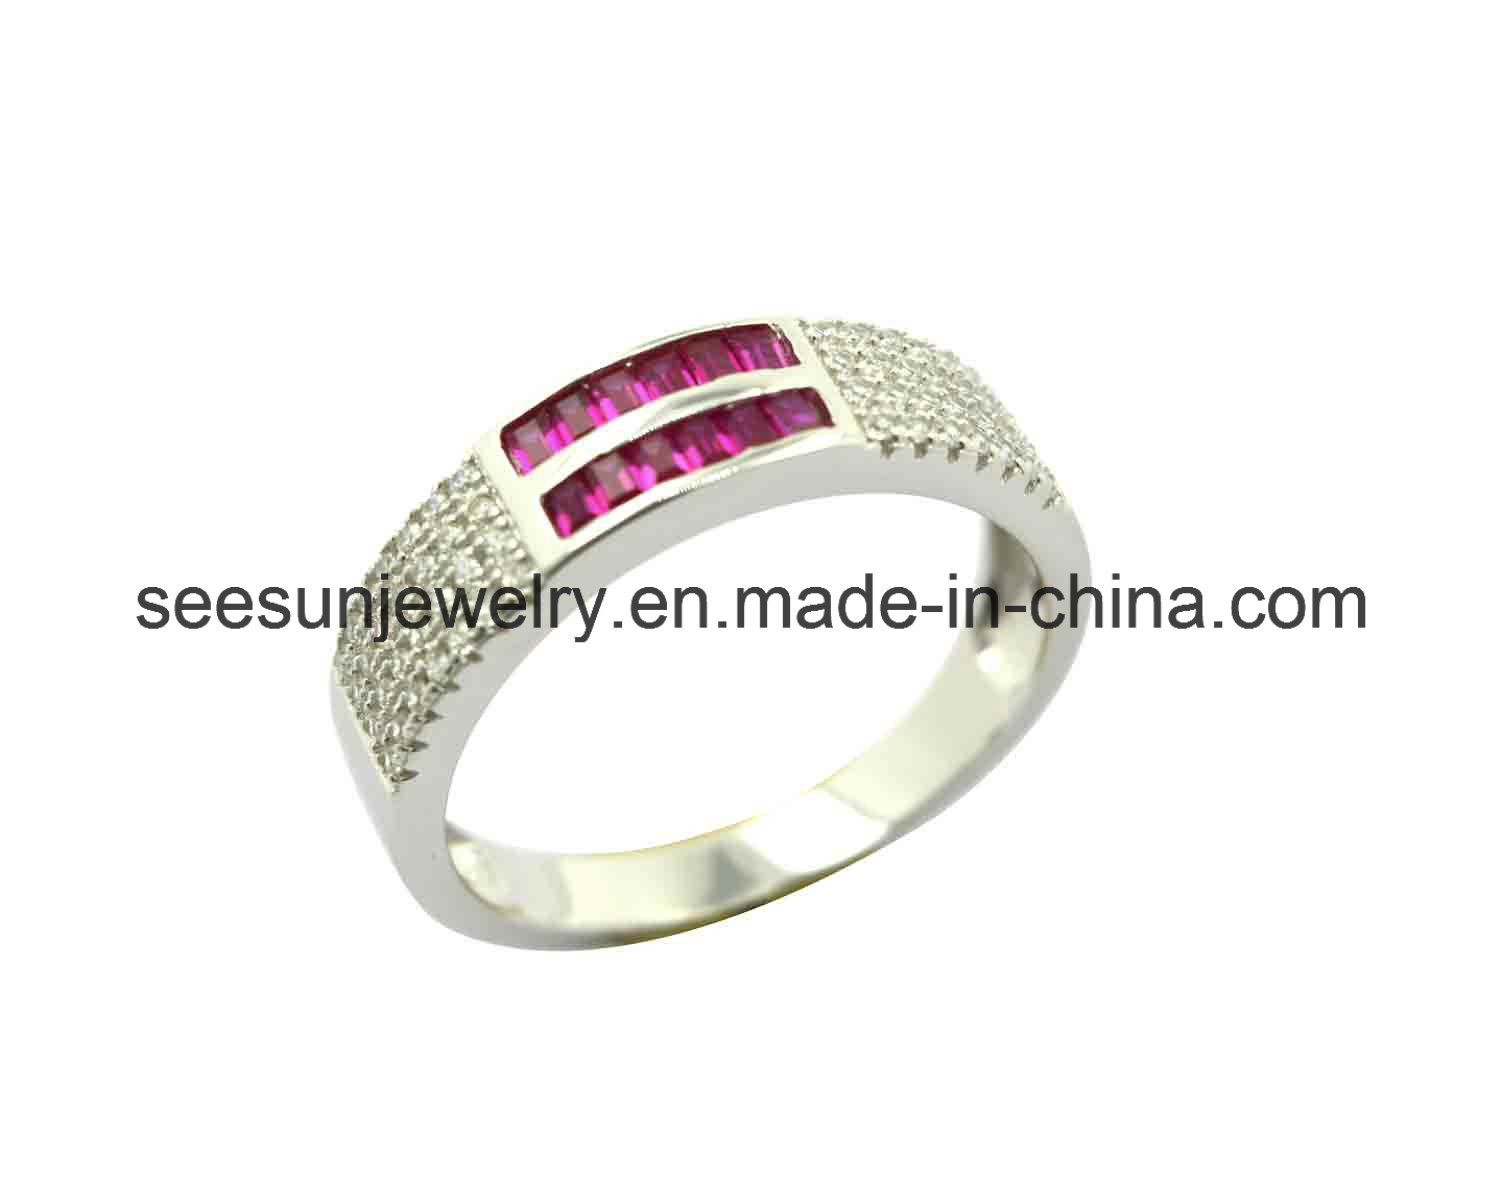 925 Sterling Silver Jewelry Band Ring Eternity Ring